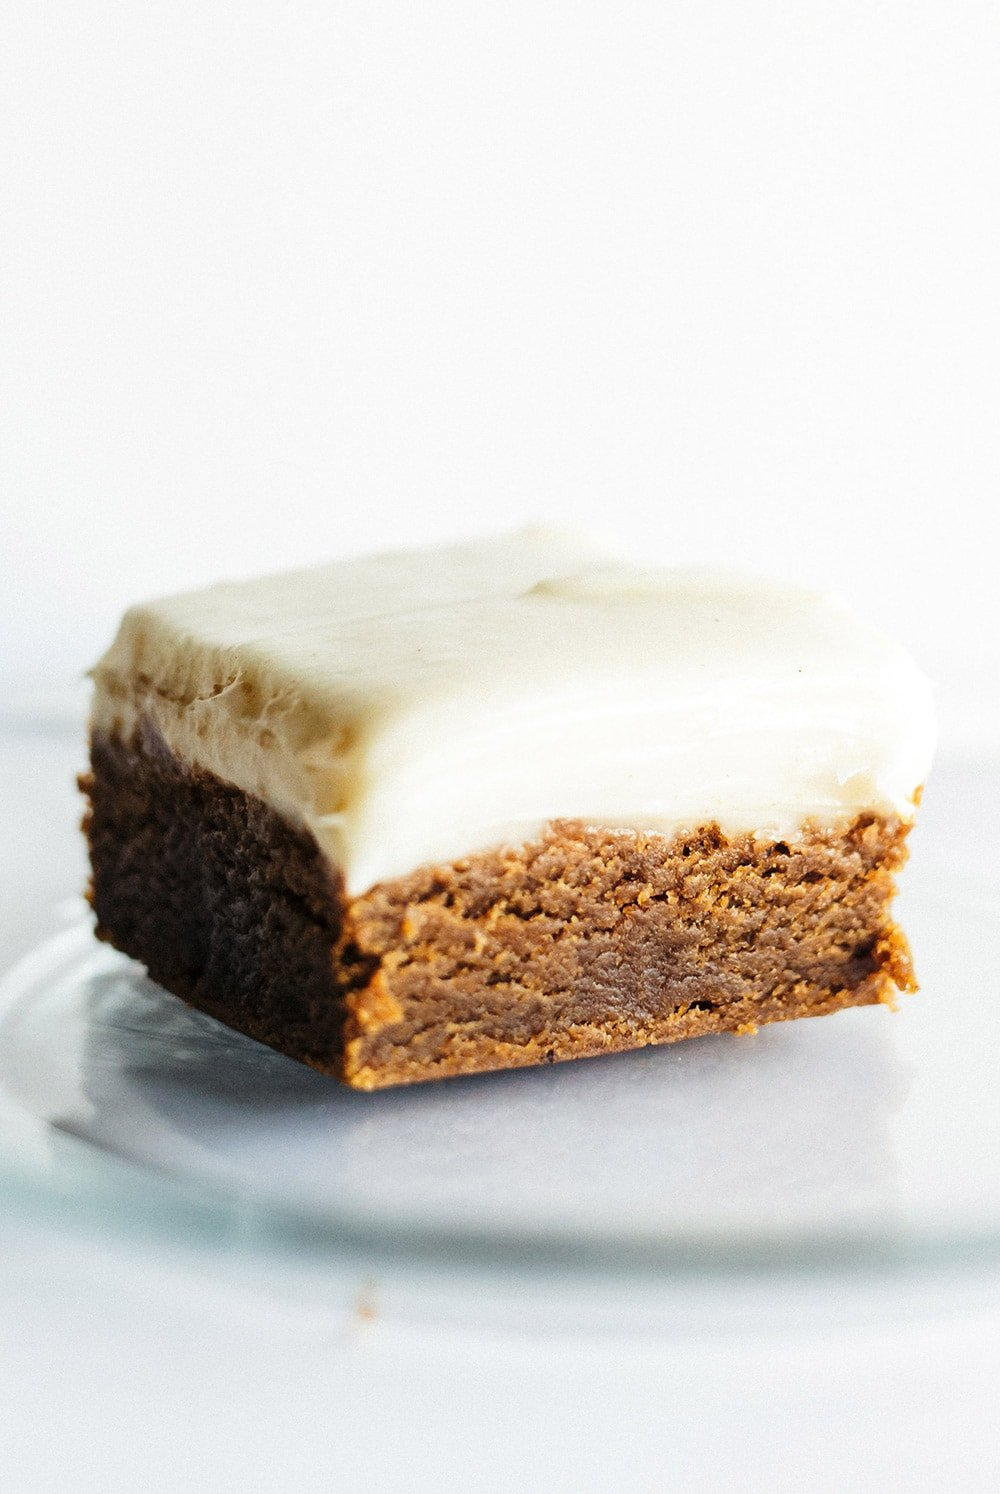 slice of homemade gingerbread cookie bar on a glass plate with cream cheese frosting on top